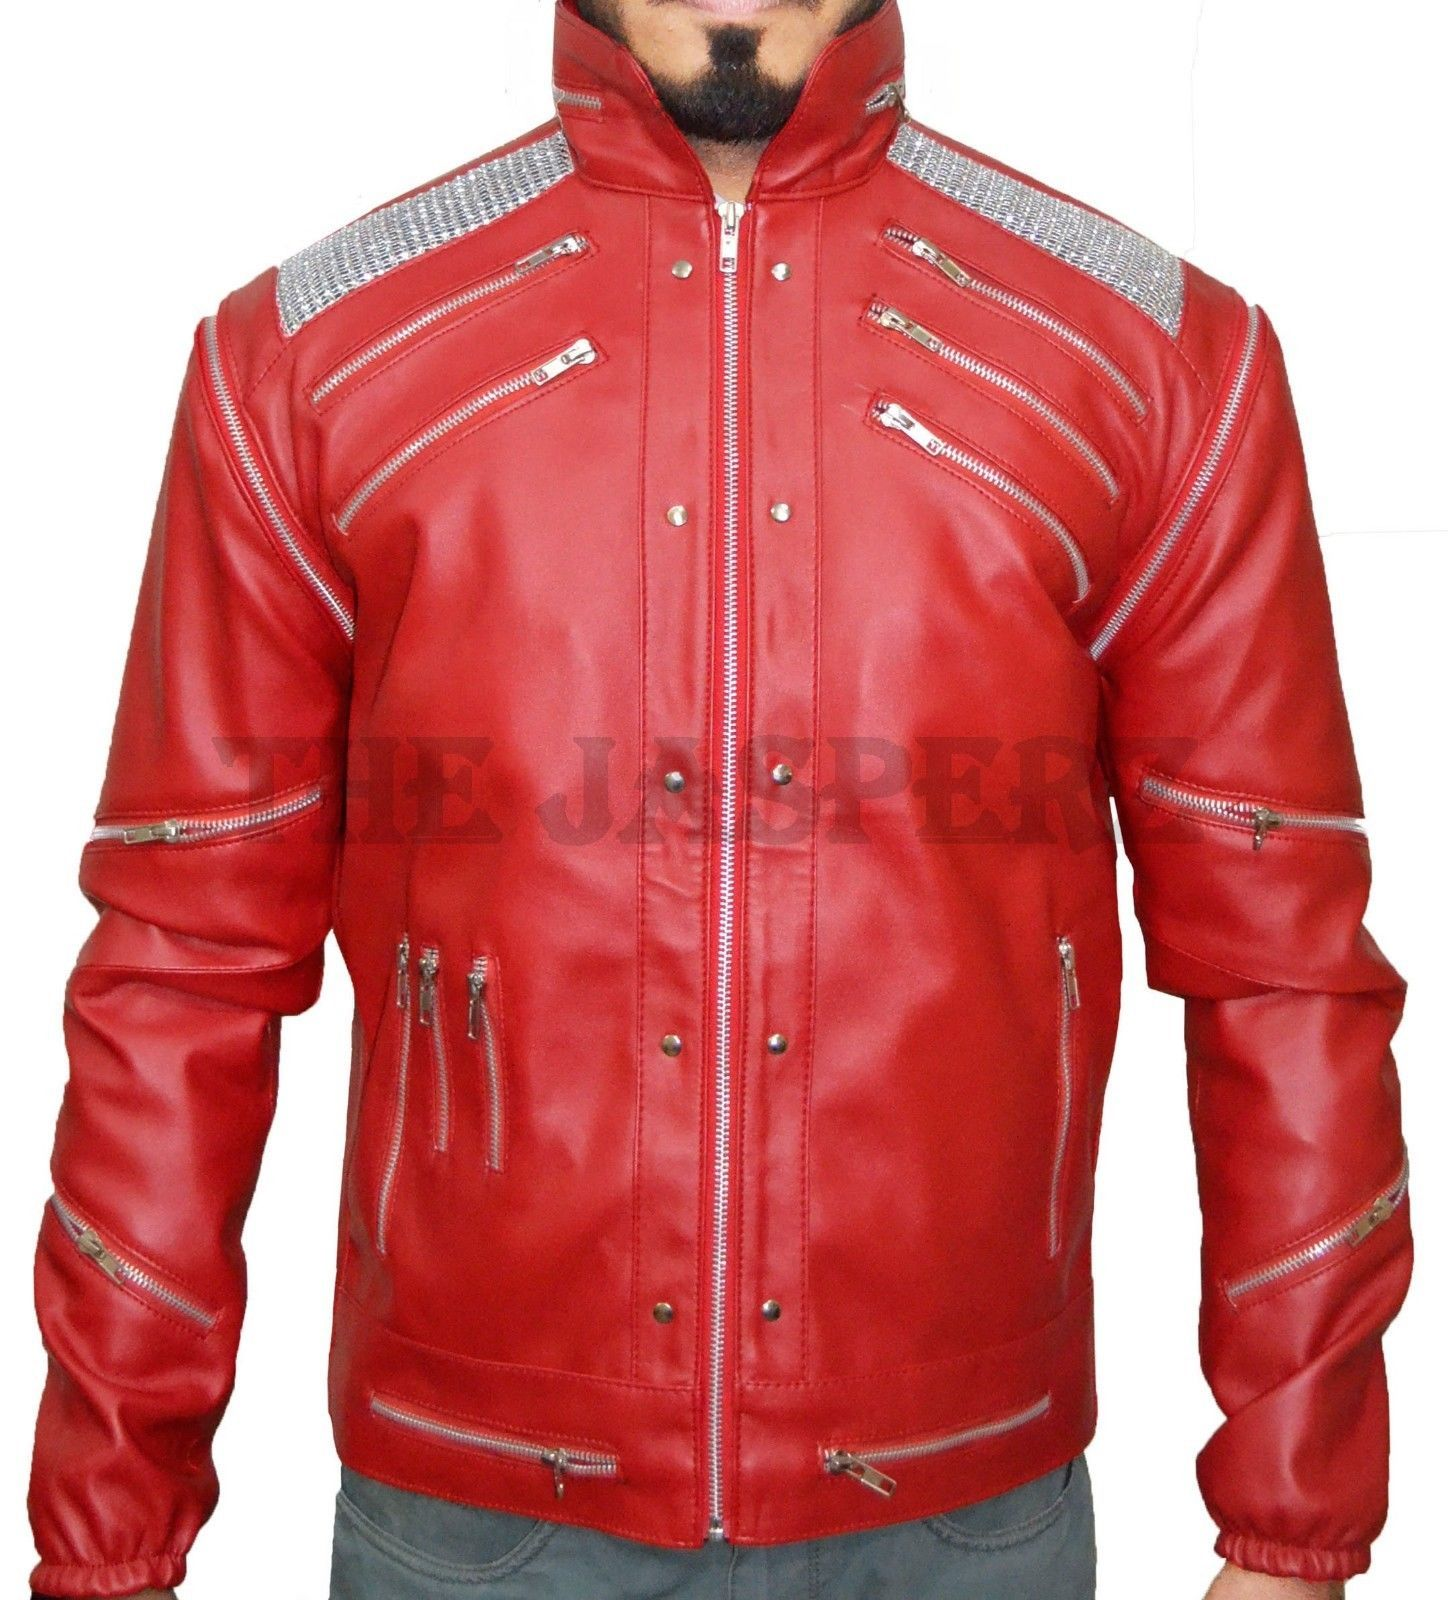 Details about MJ Beat it, Michael Jackson Thriller Red